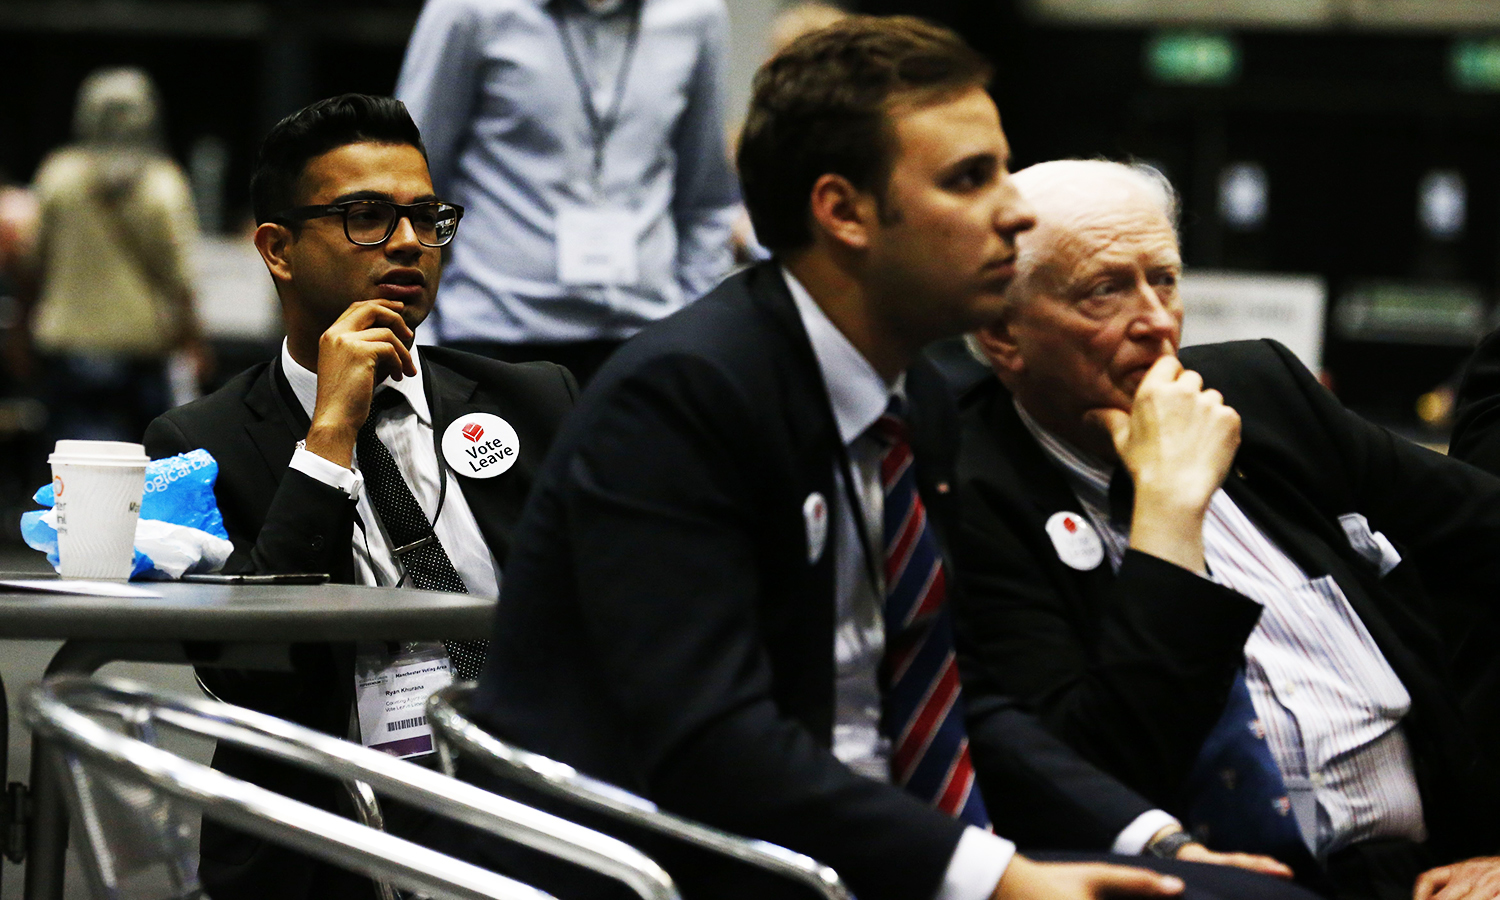 "Pro-Leave campaigners watch TV screens as results begin to come in at the Manchester Central Convention Complex where the EU referendum vote count is taking place in Manchester, north west England on June 23, 2016. First results from Britain's historic EU referendum suggest an extremely tight race, with swathes of northern England backing ""Leave"" but parts of London and Scotland coming out strongly for ""Remain"". / AFP PHOTO / Lindsey PARNABY"